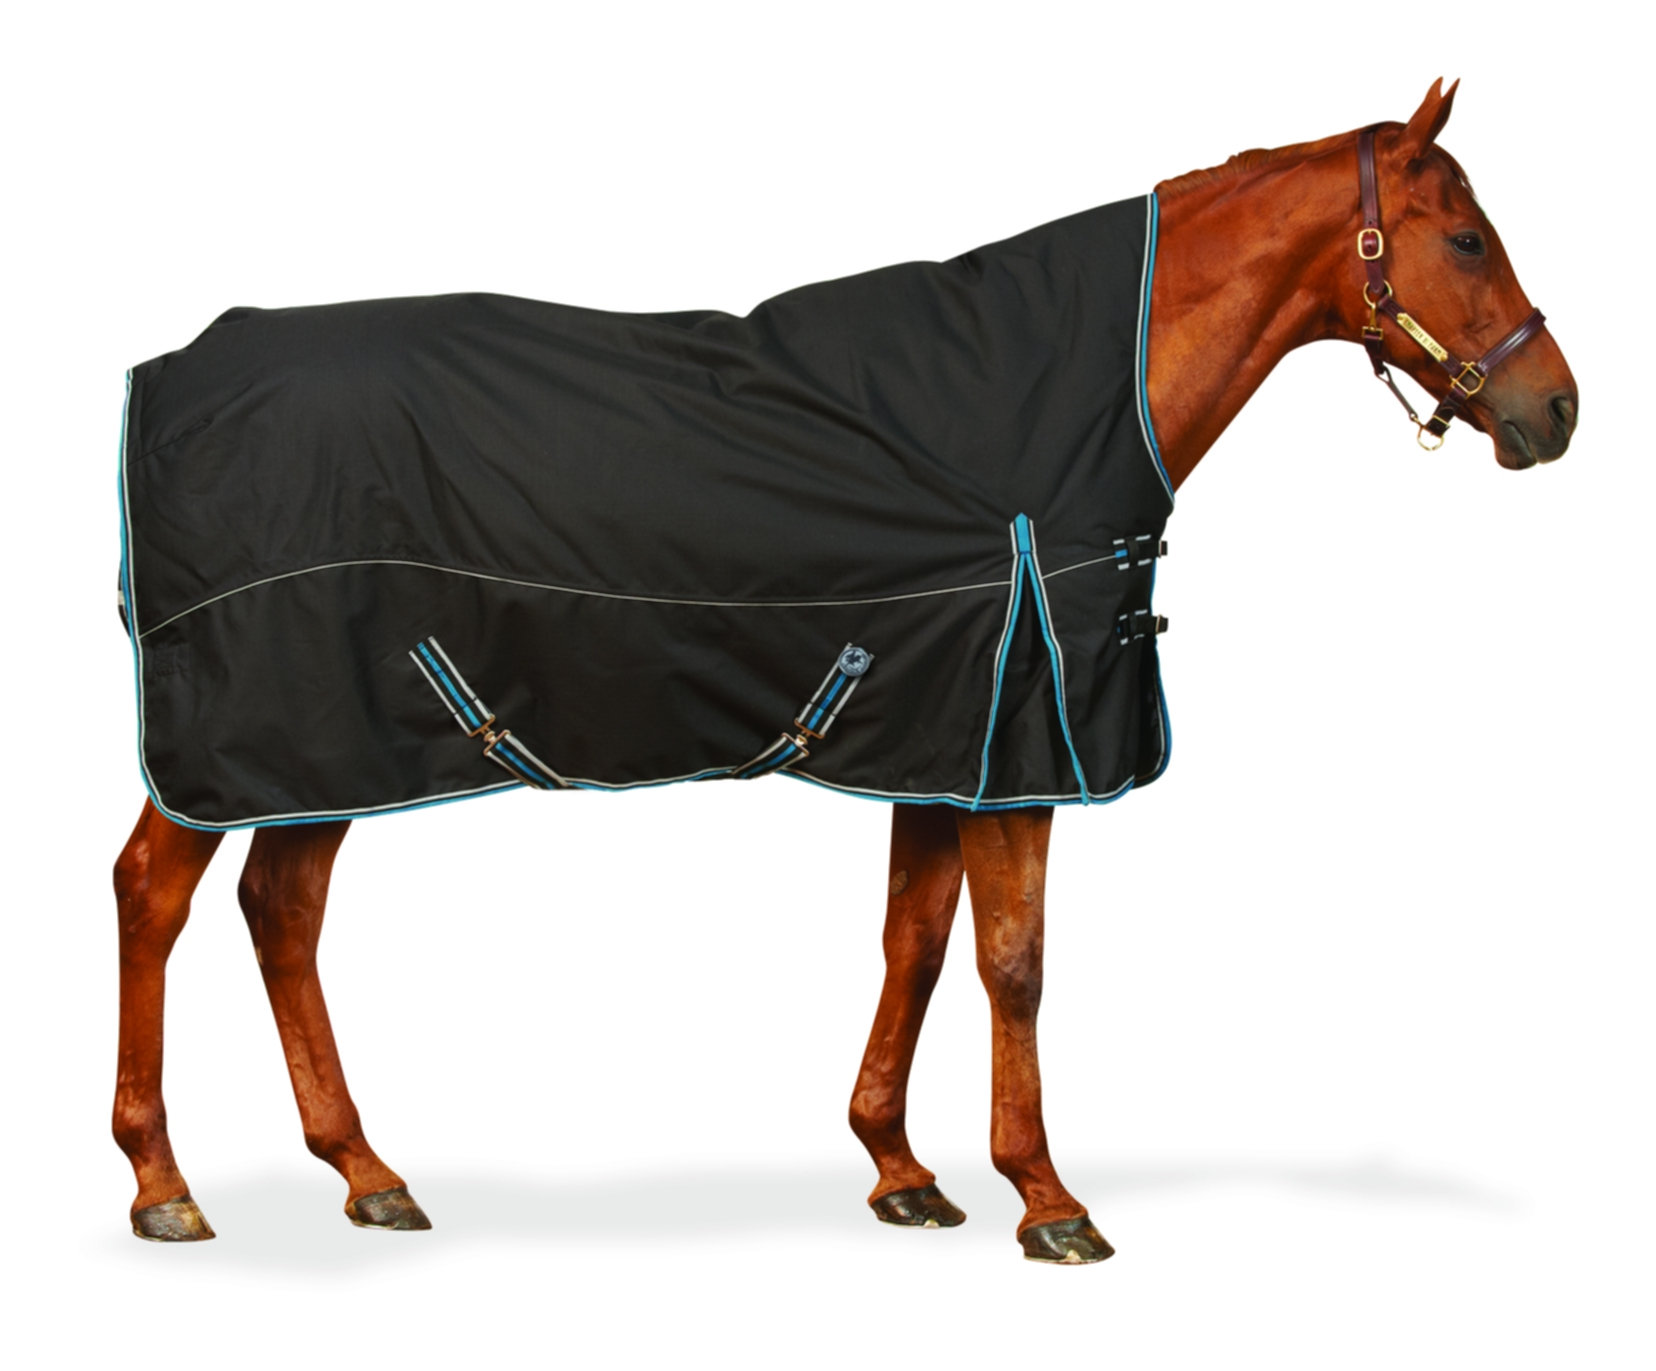 Centaur Midneck 1200D Waterproof / Breathable Heavyweight Blanket